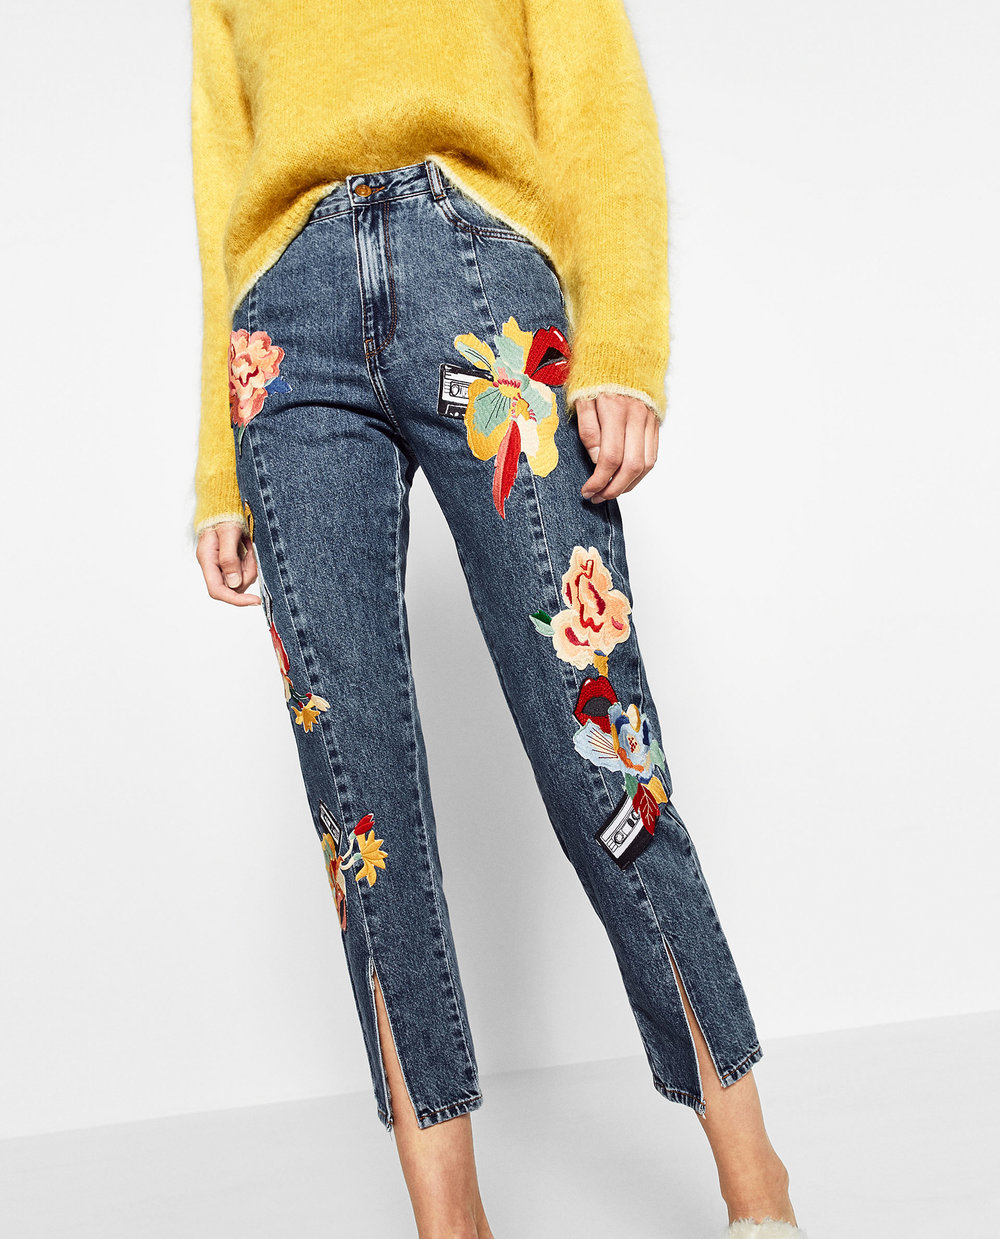 Zara Embroidered Jean